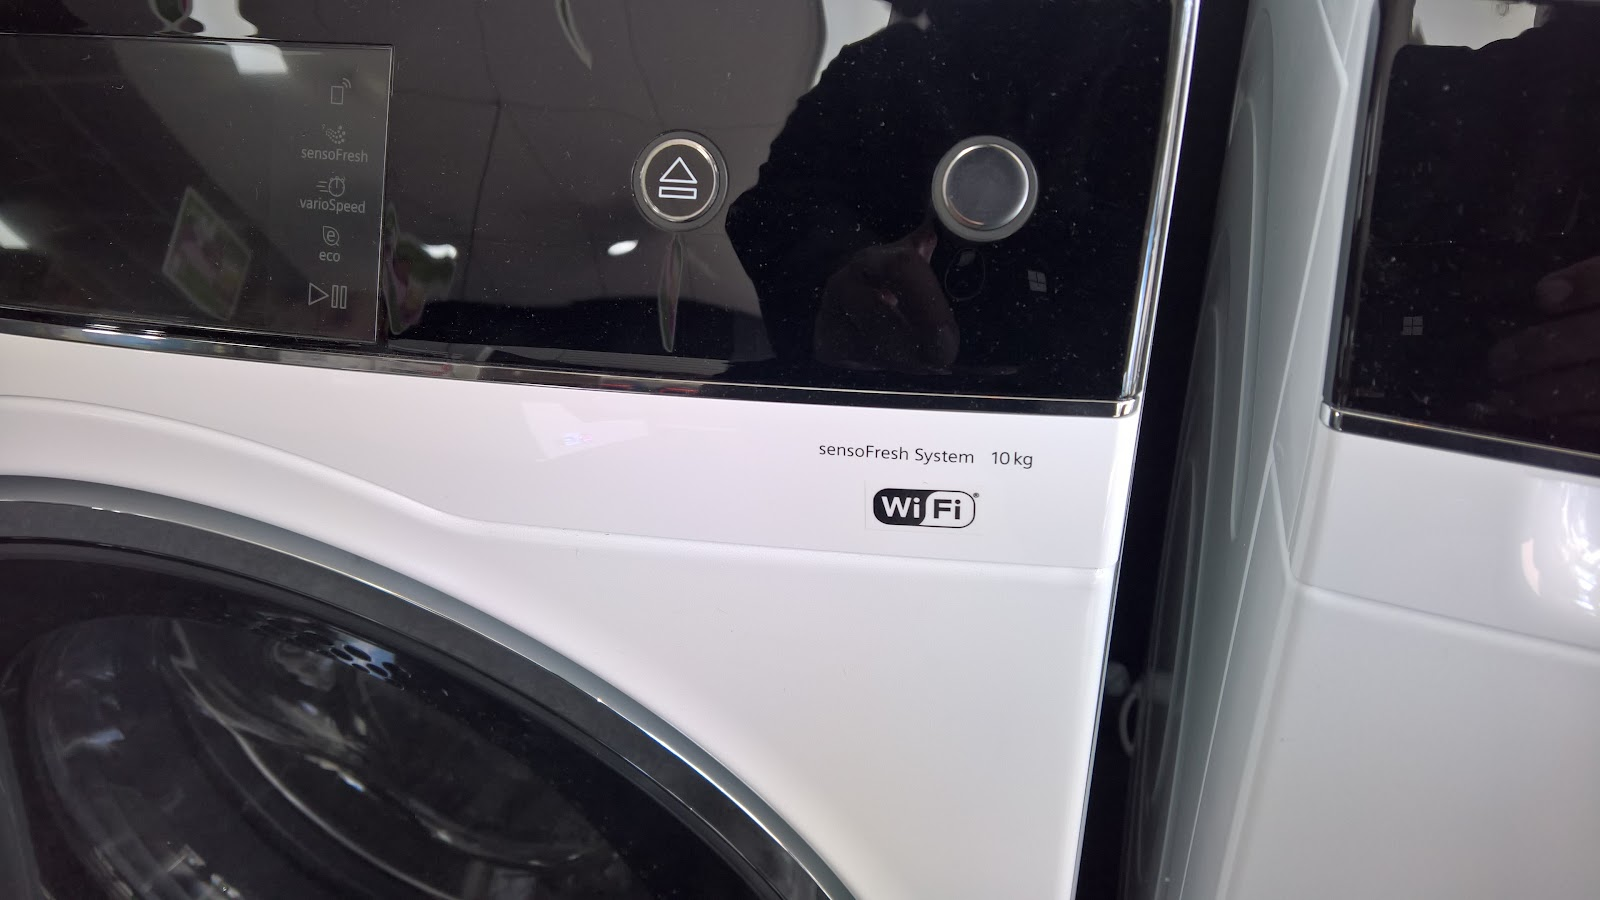 Washing Machine with Wi fi enabled